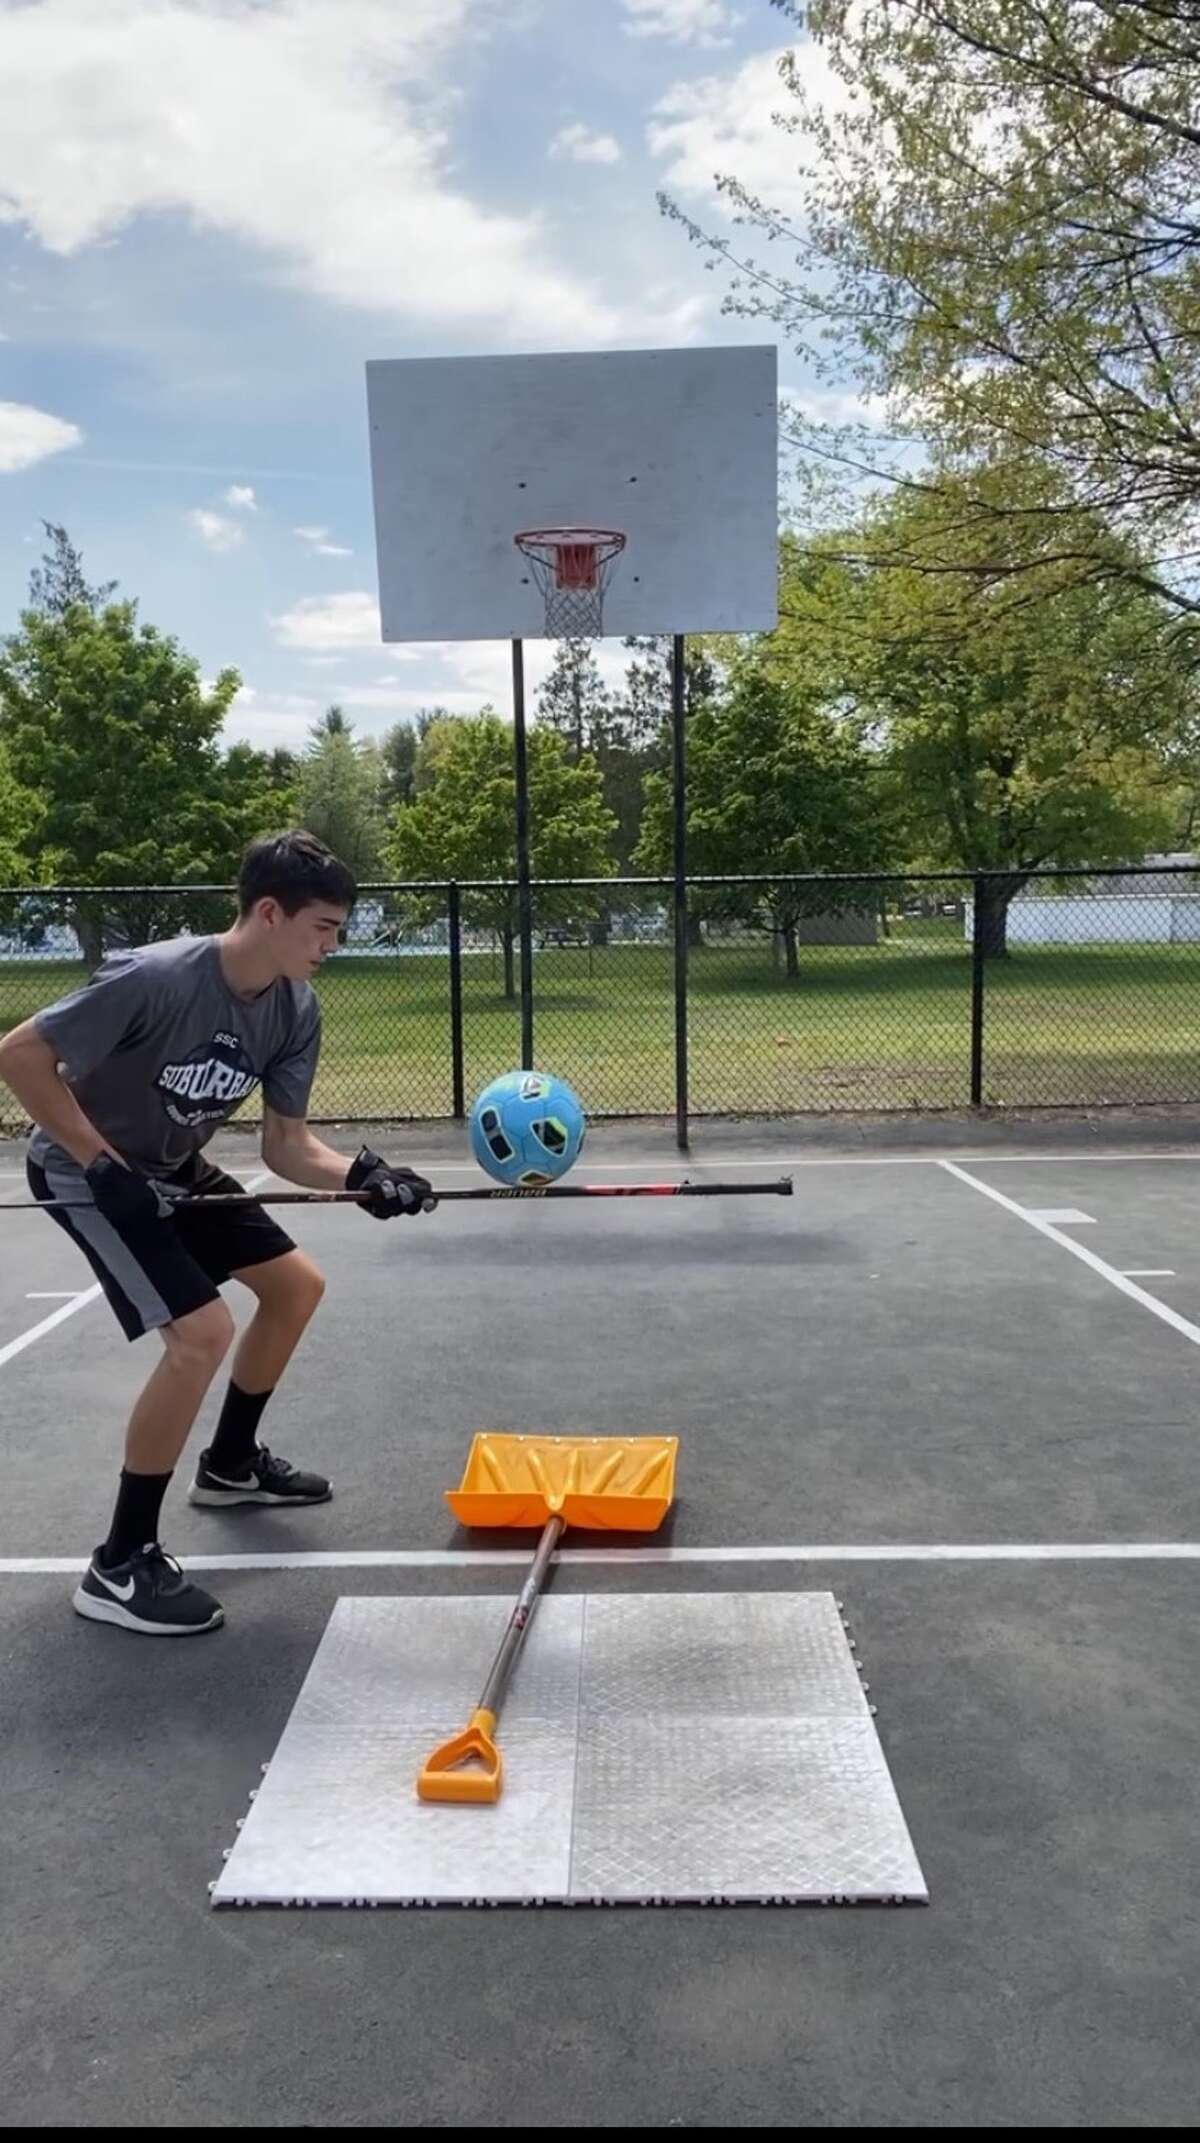 Carson Curran, a 17-year-old from Clifton Park, creates viral videos of trick shots.